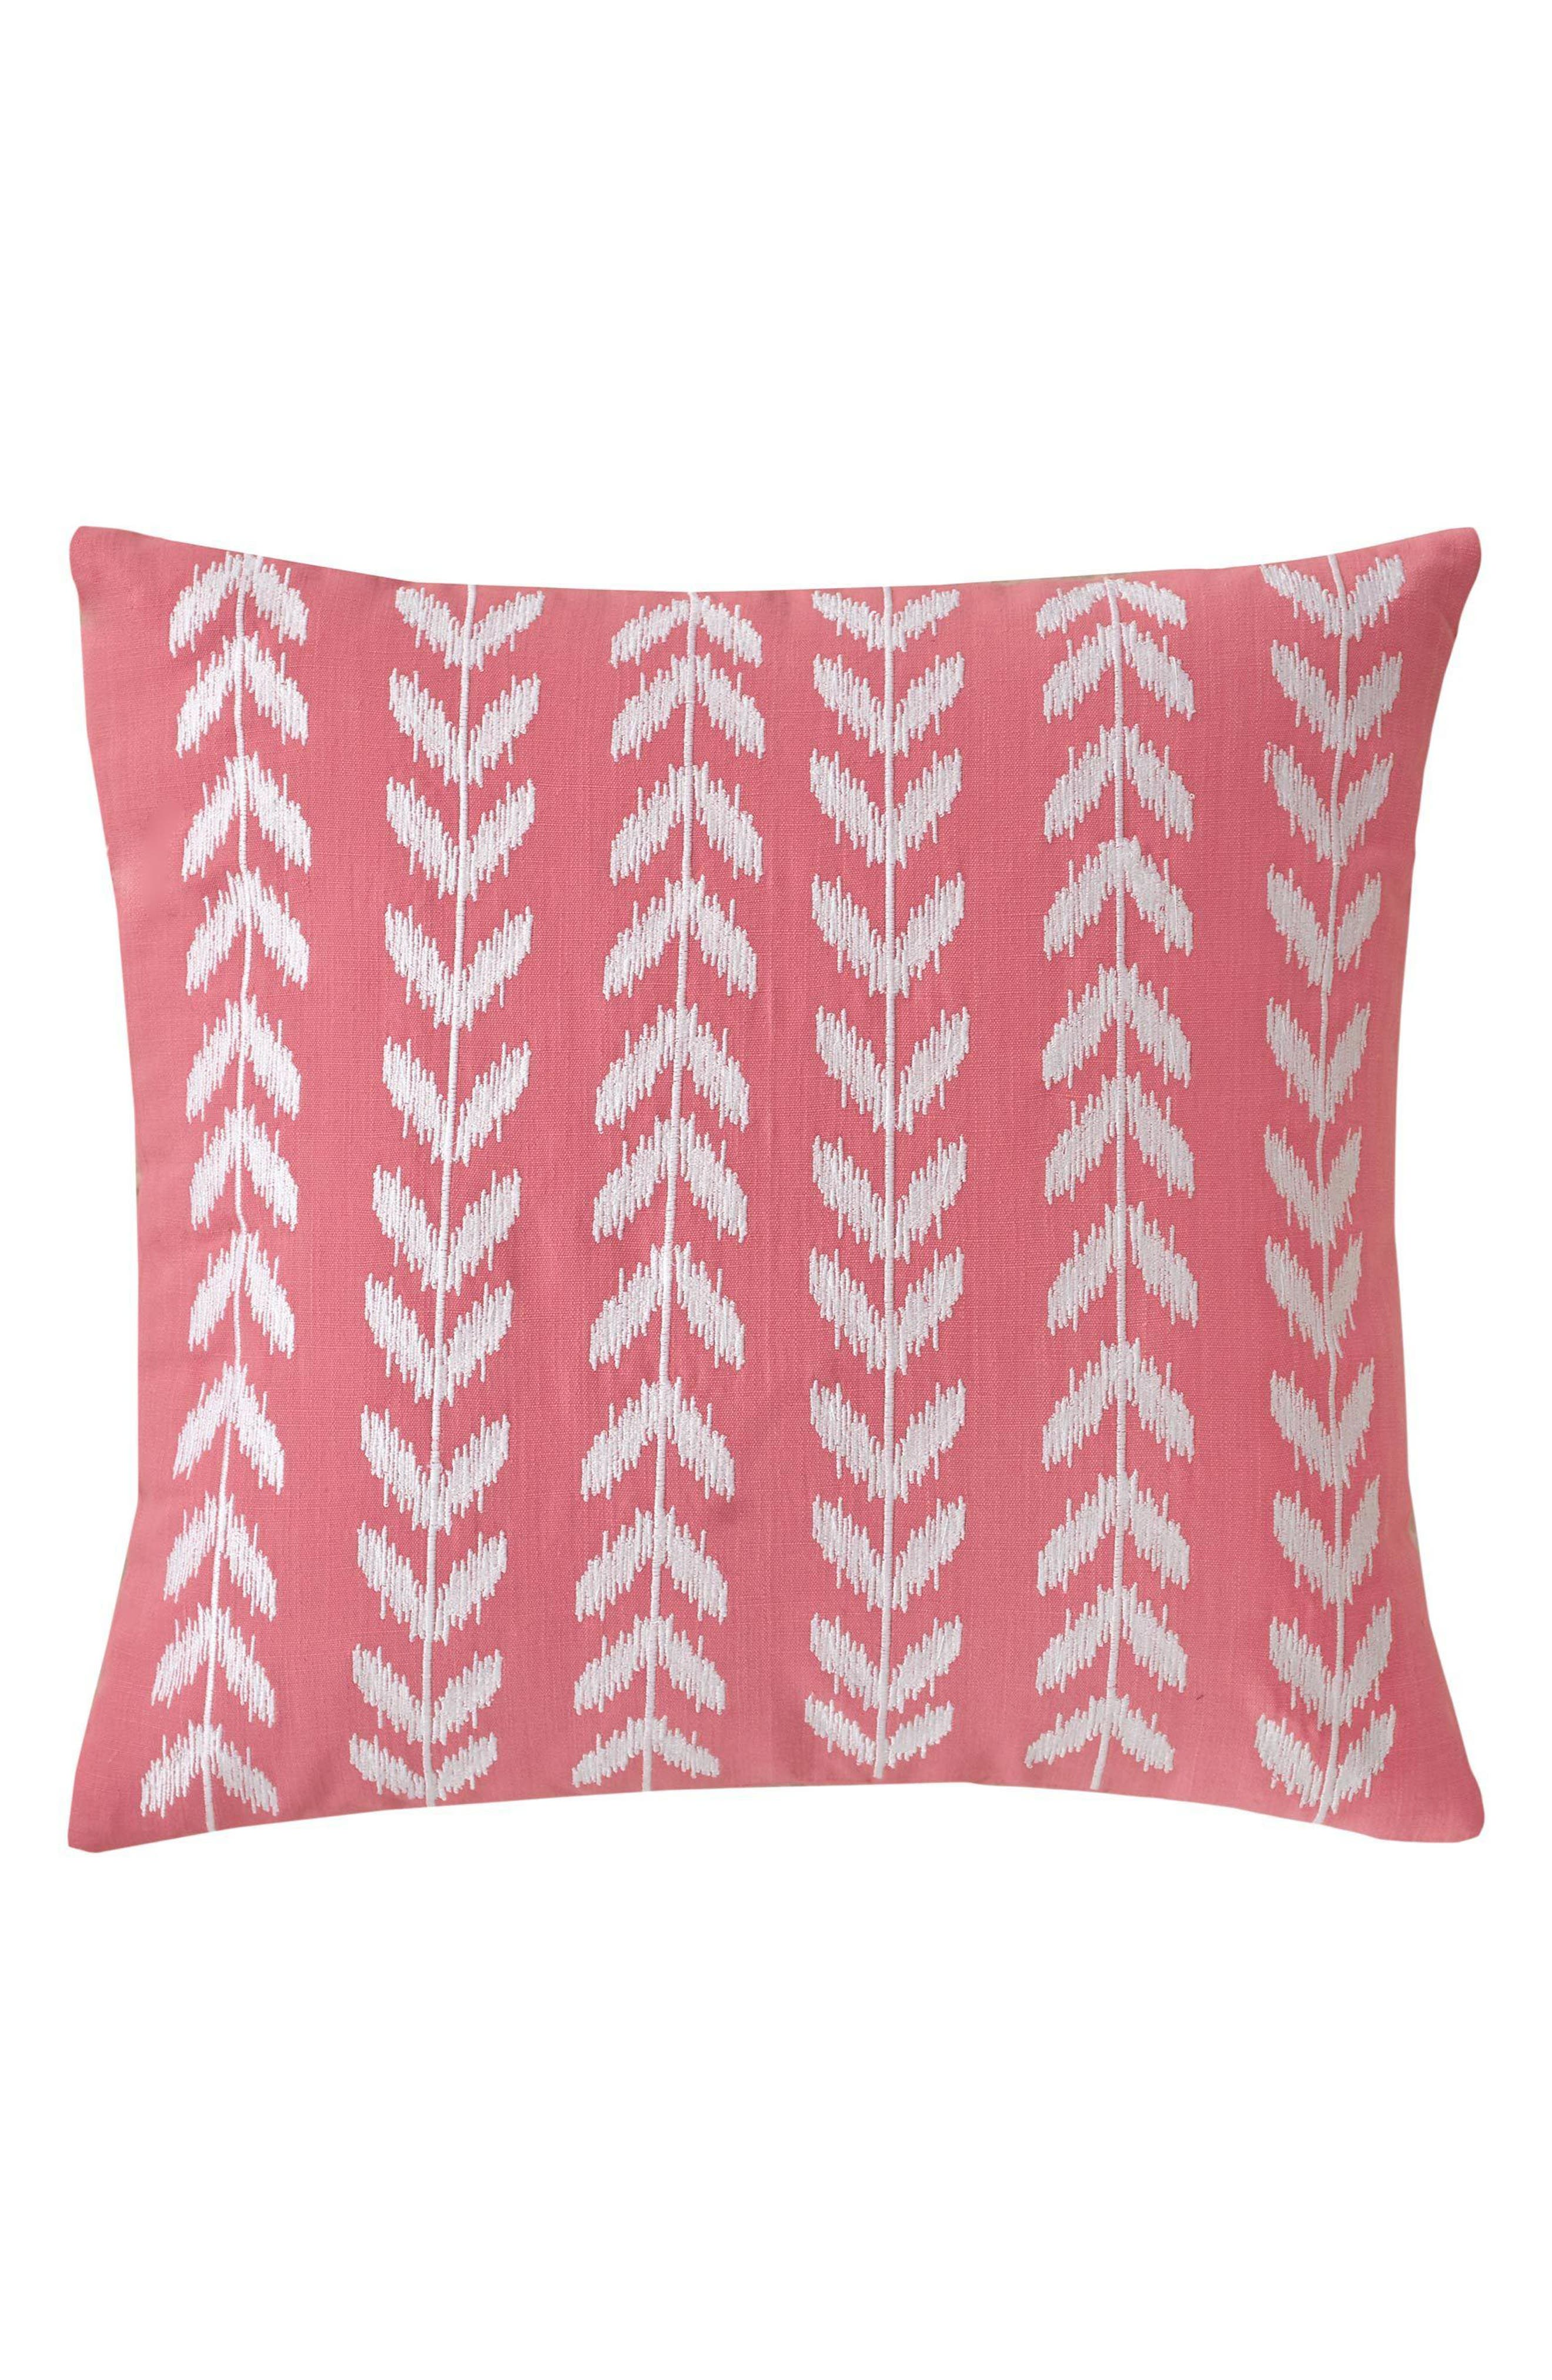 Alternate Image 1 Selected - Southern Tide Coastal Ikat Heart Deco Accent Pillow